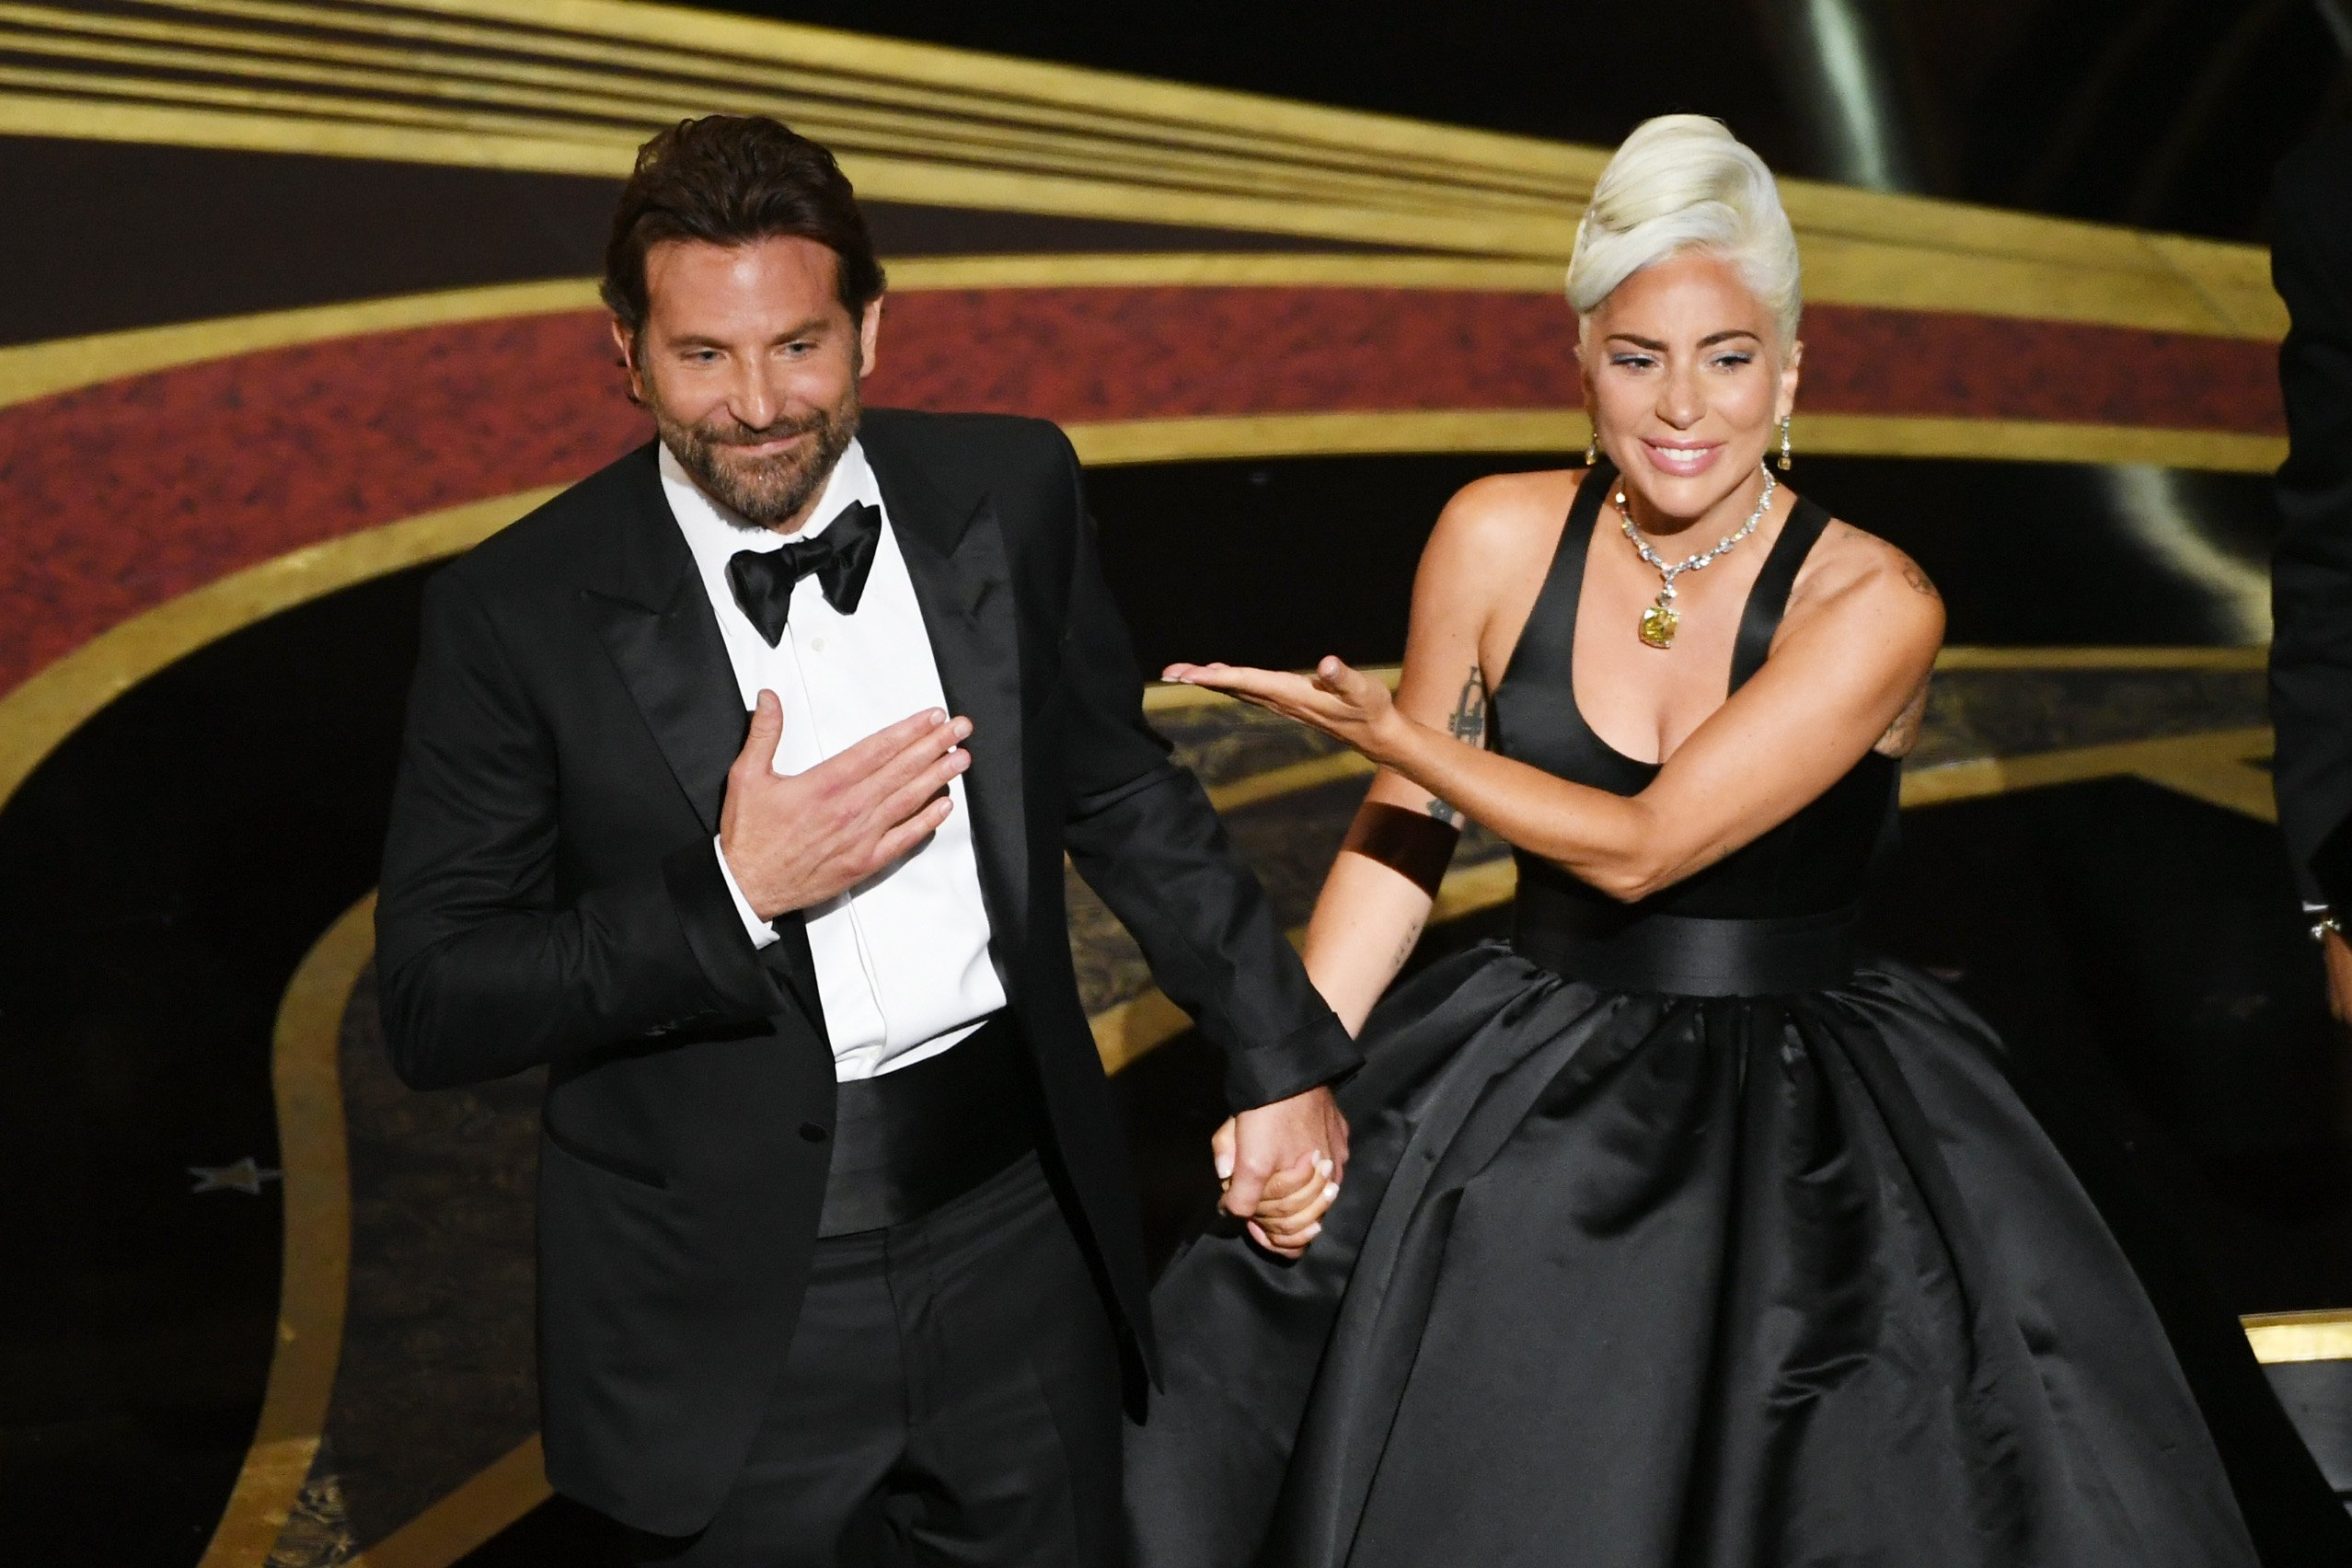 """Bradley Cooper and Lady Gaga after performing """"Shallow"""" at the Academy Awards 